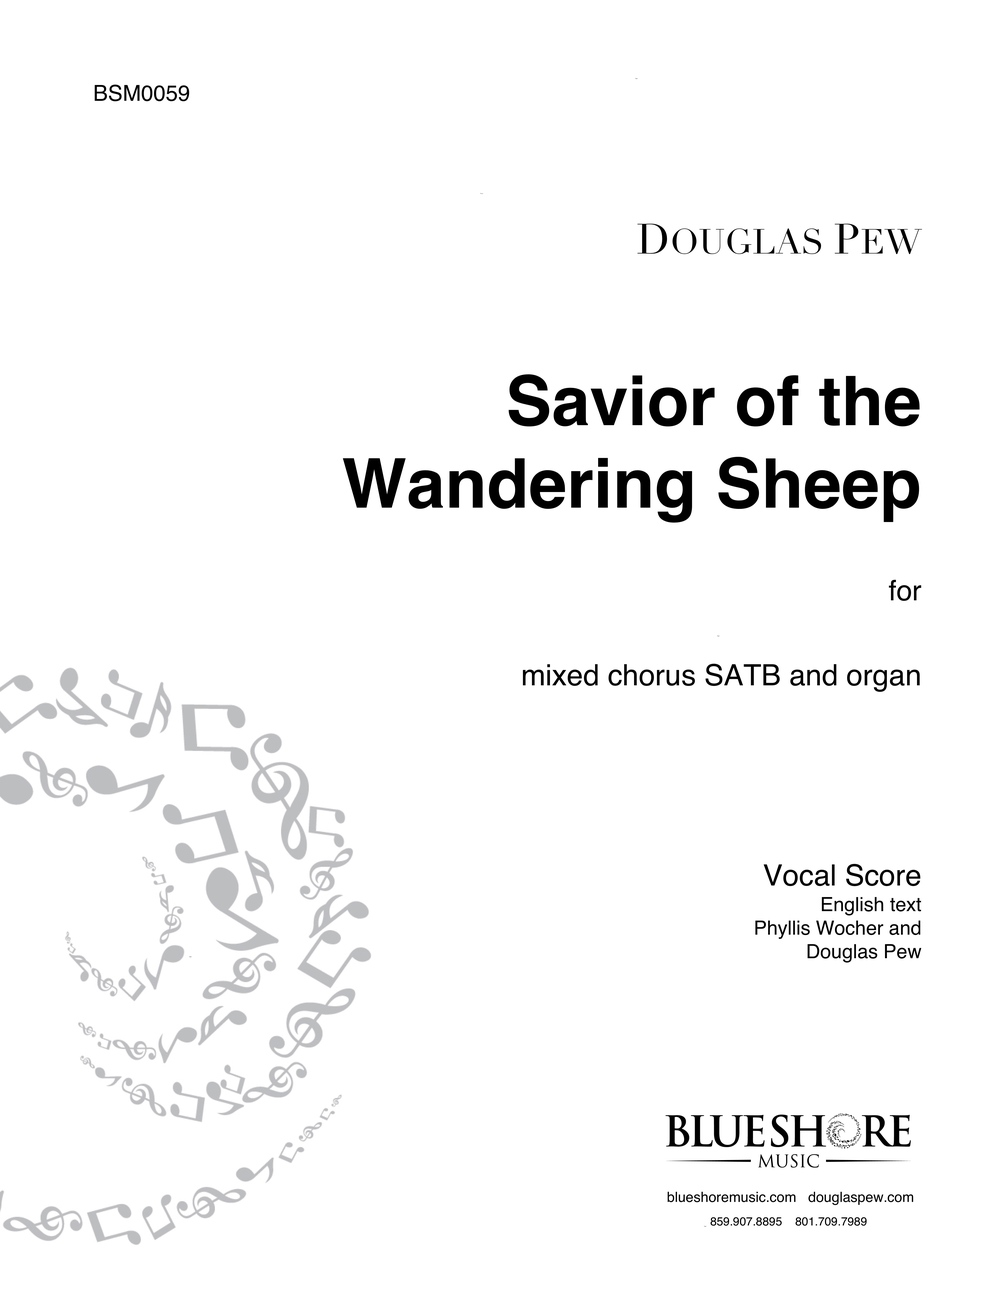 Savior of the Wandering Sheep - SATB and Organ - *COMING SOON*